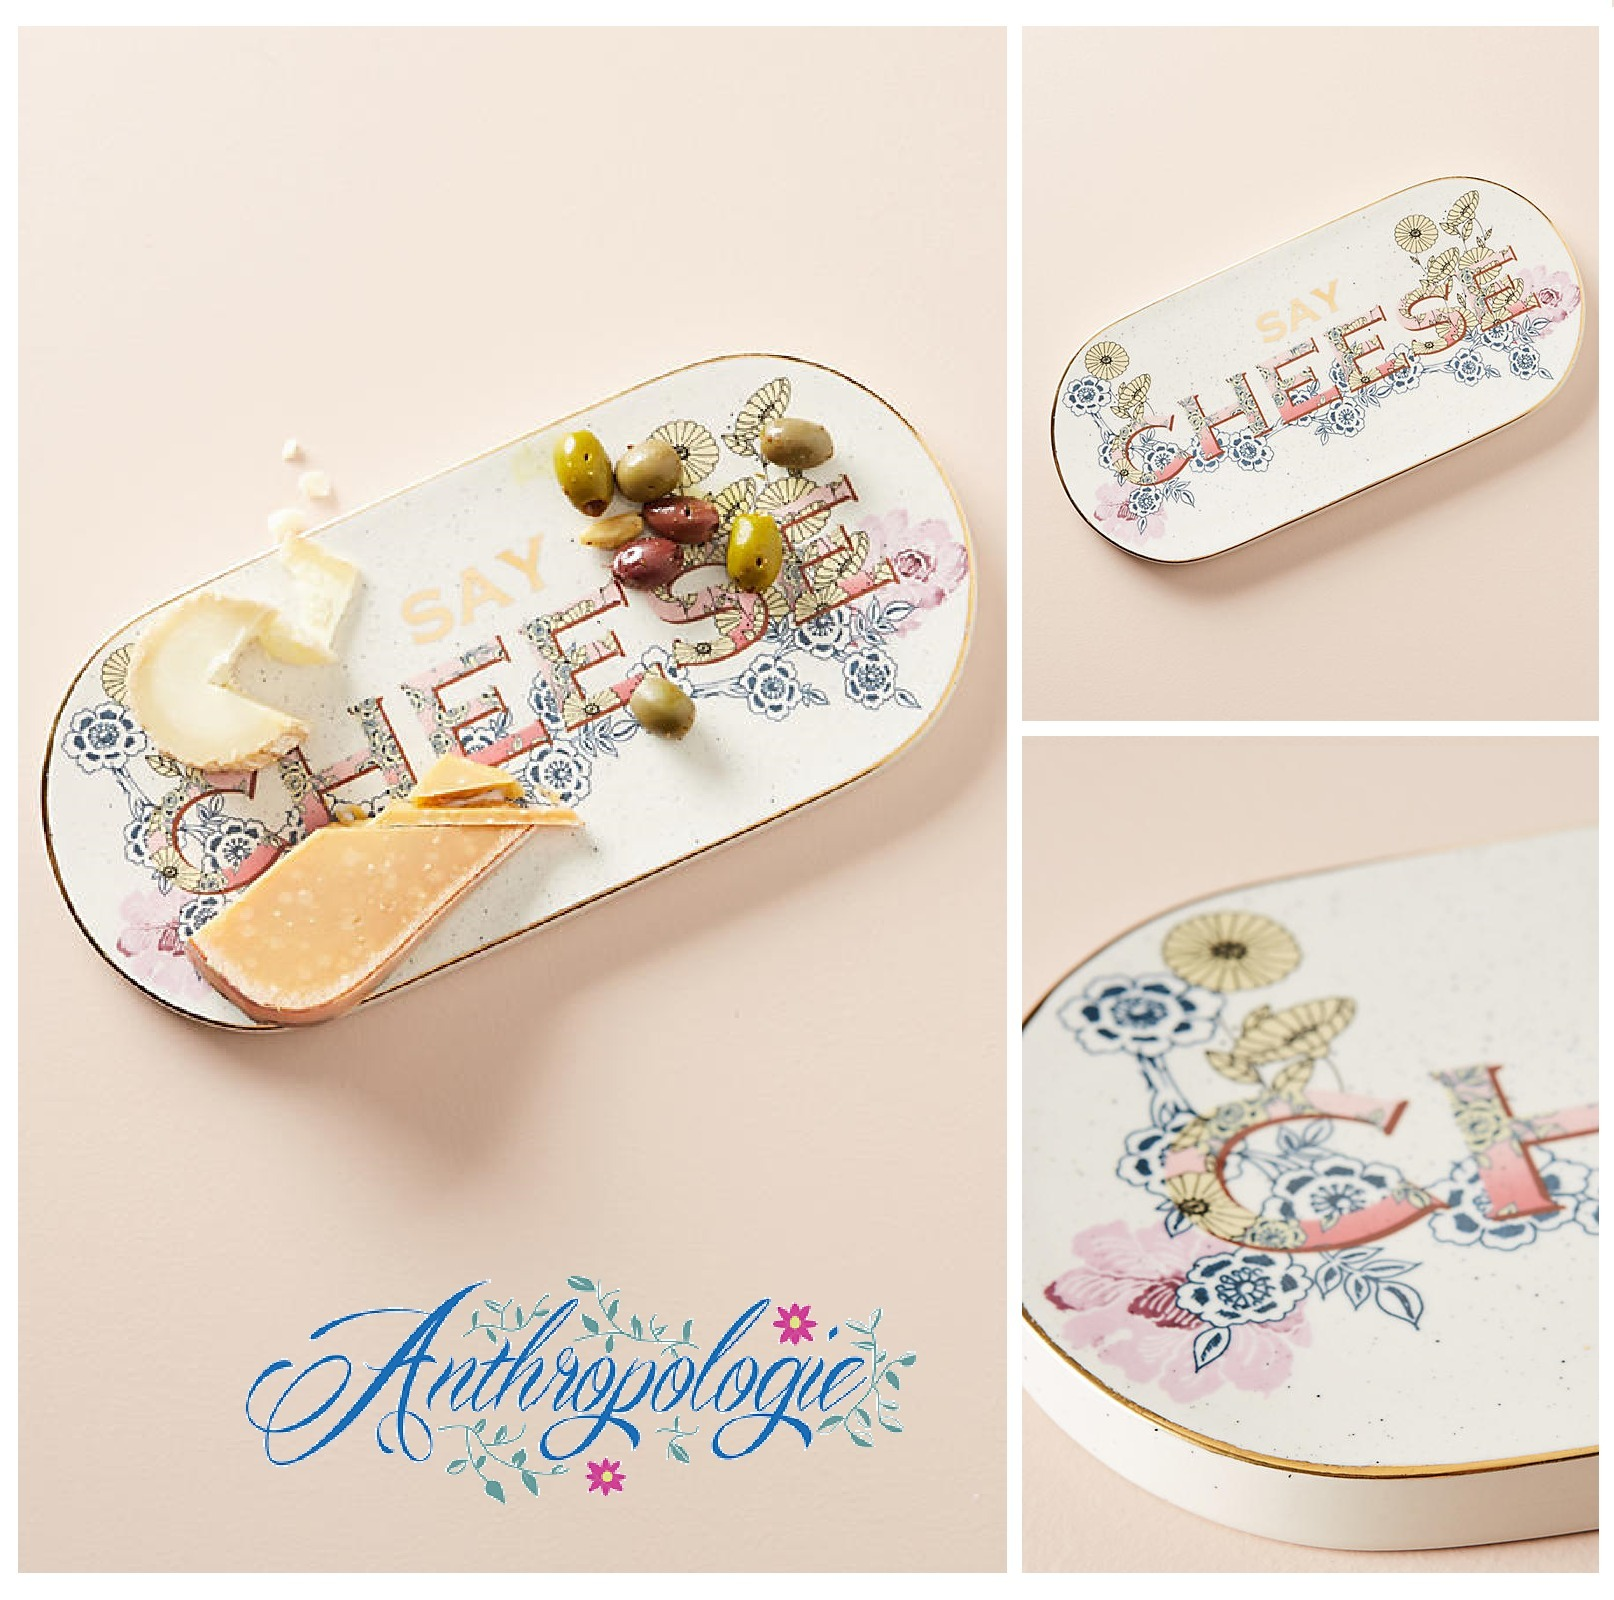 ☆ANTHROPOLOGIE☆Say Cheese Board